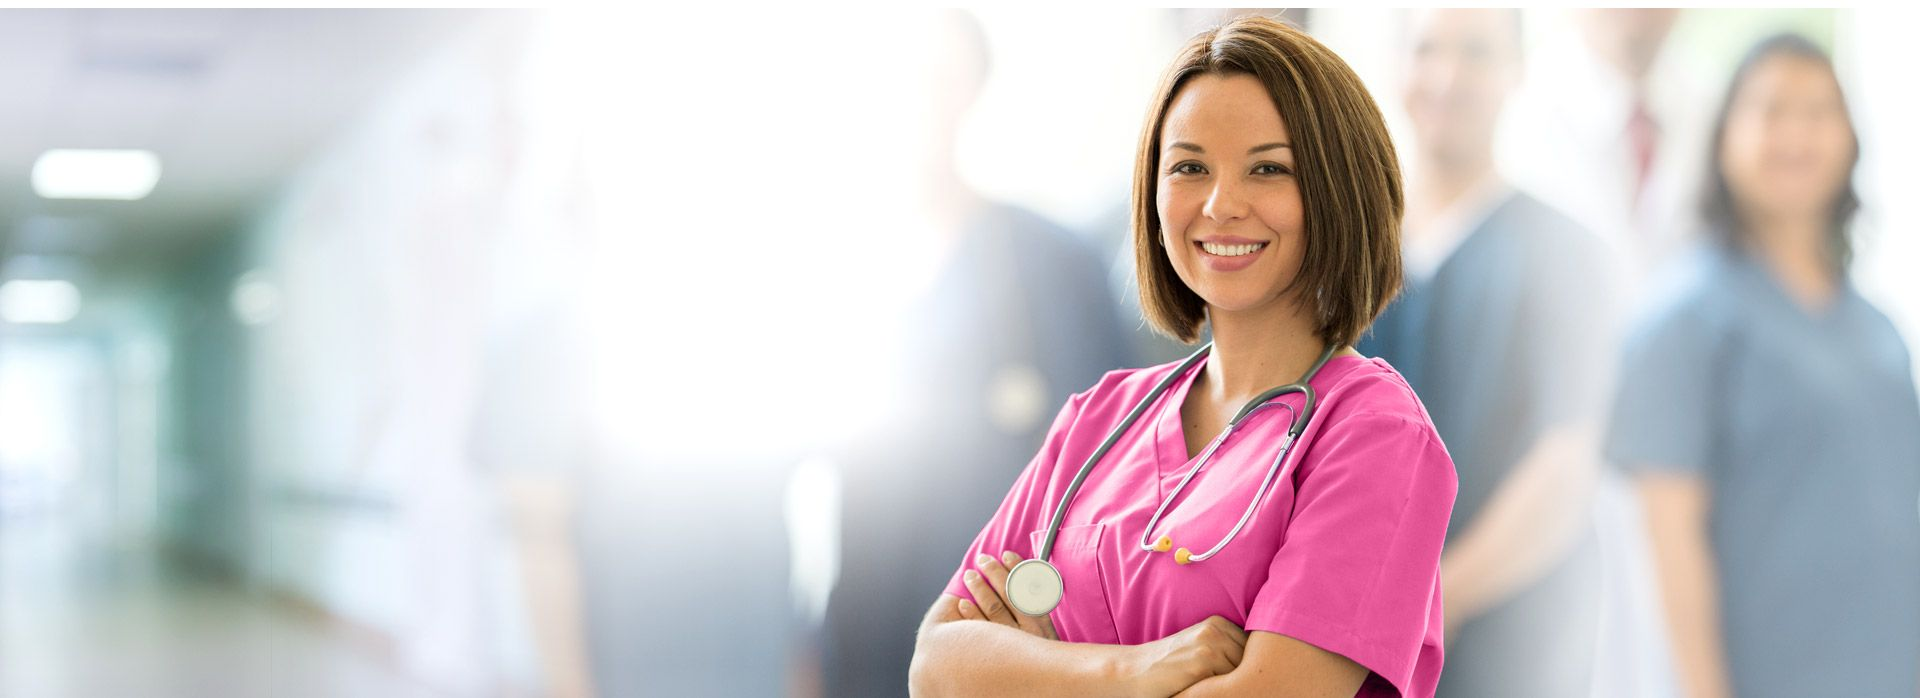 Female Nurse in Pink Scrubs